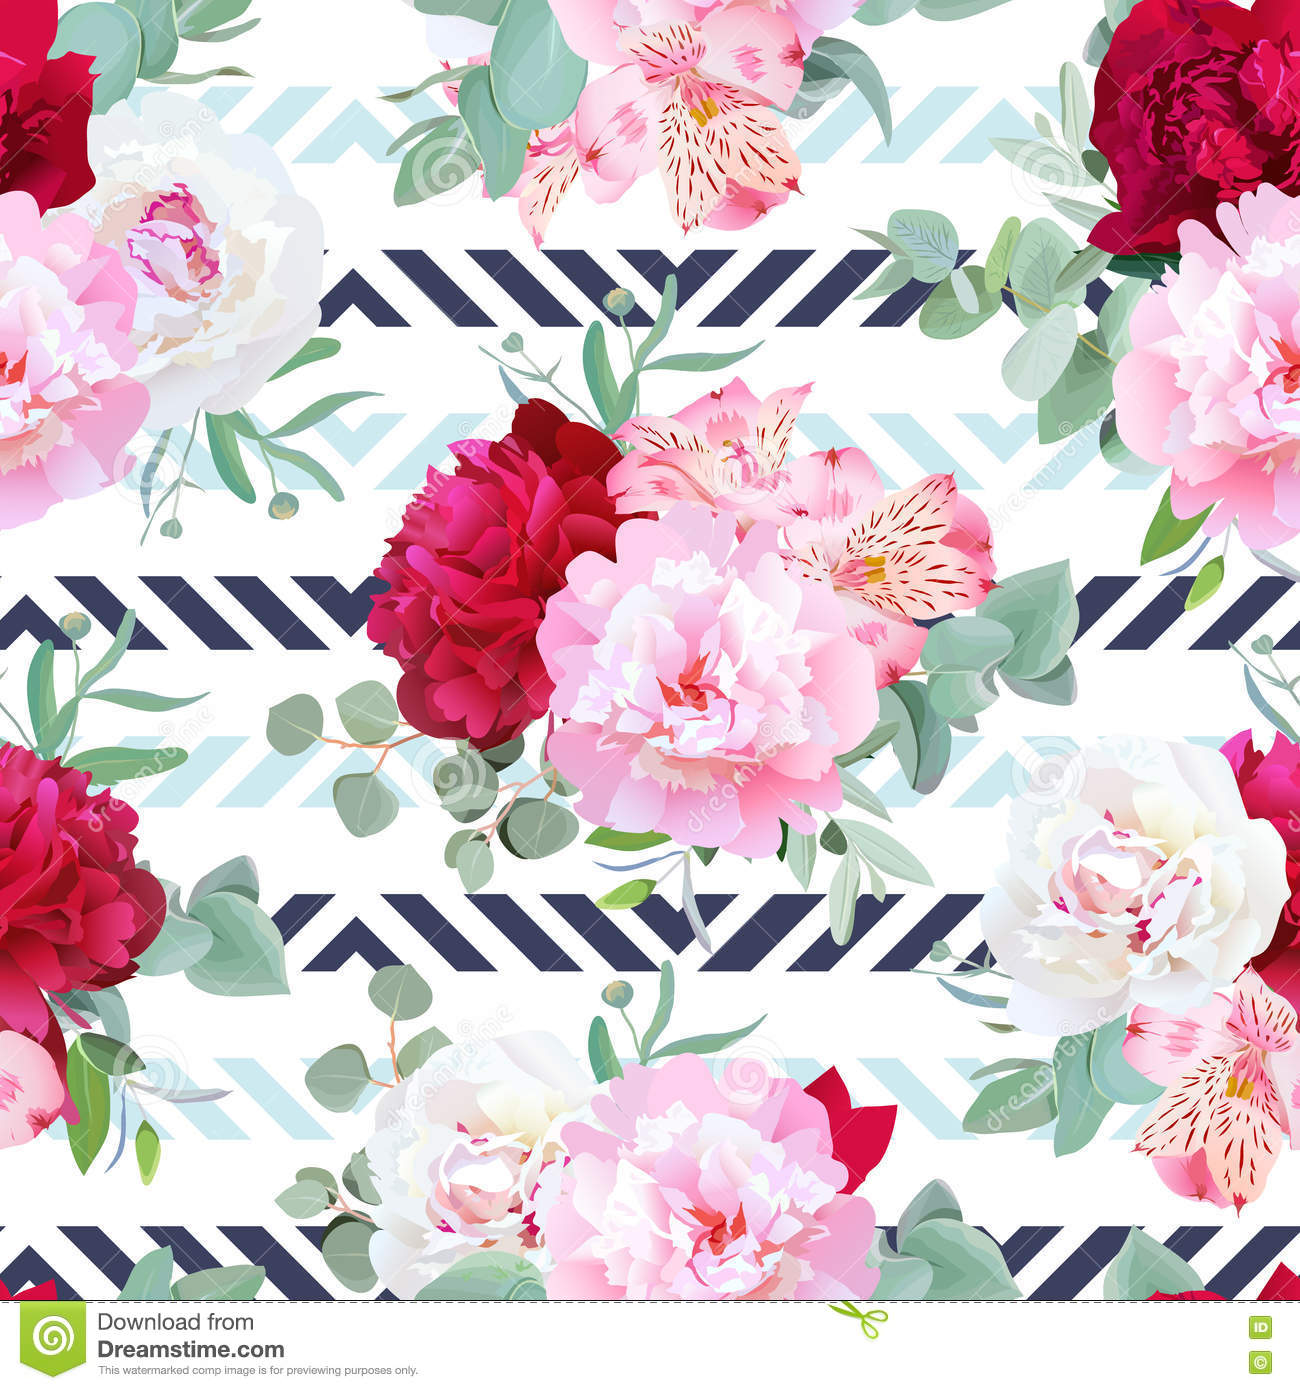 Muted Blue And Floral Red: Striped Navy And Light Blue Floral Seamless Vector Print